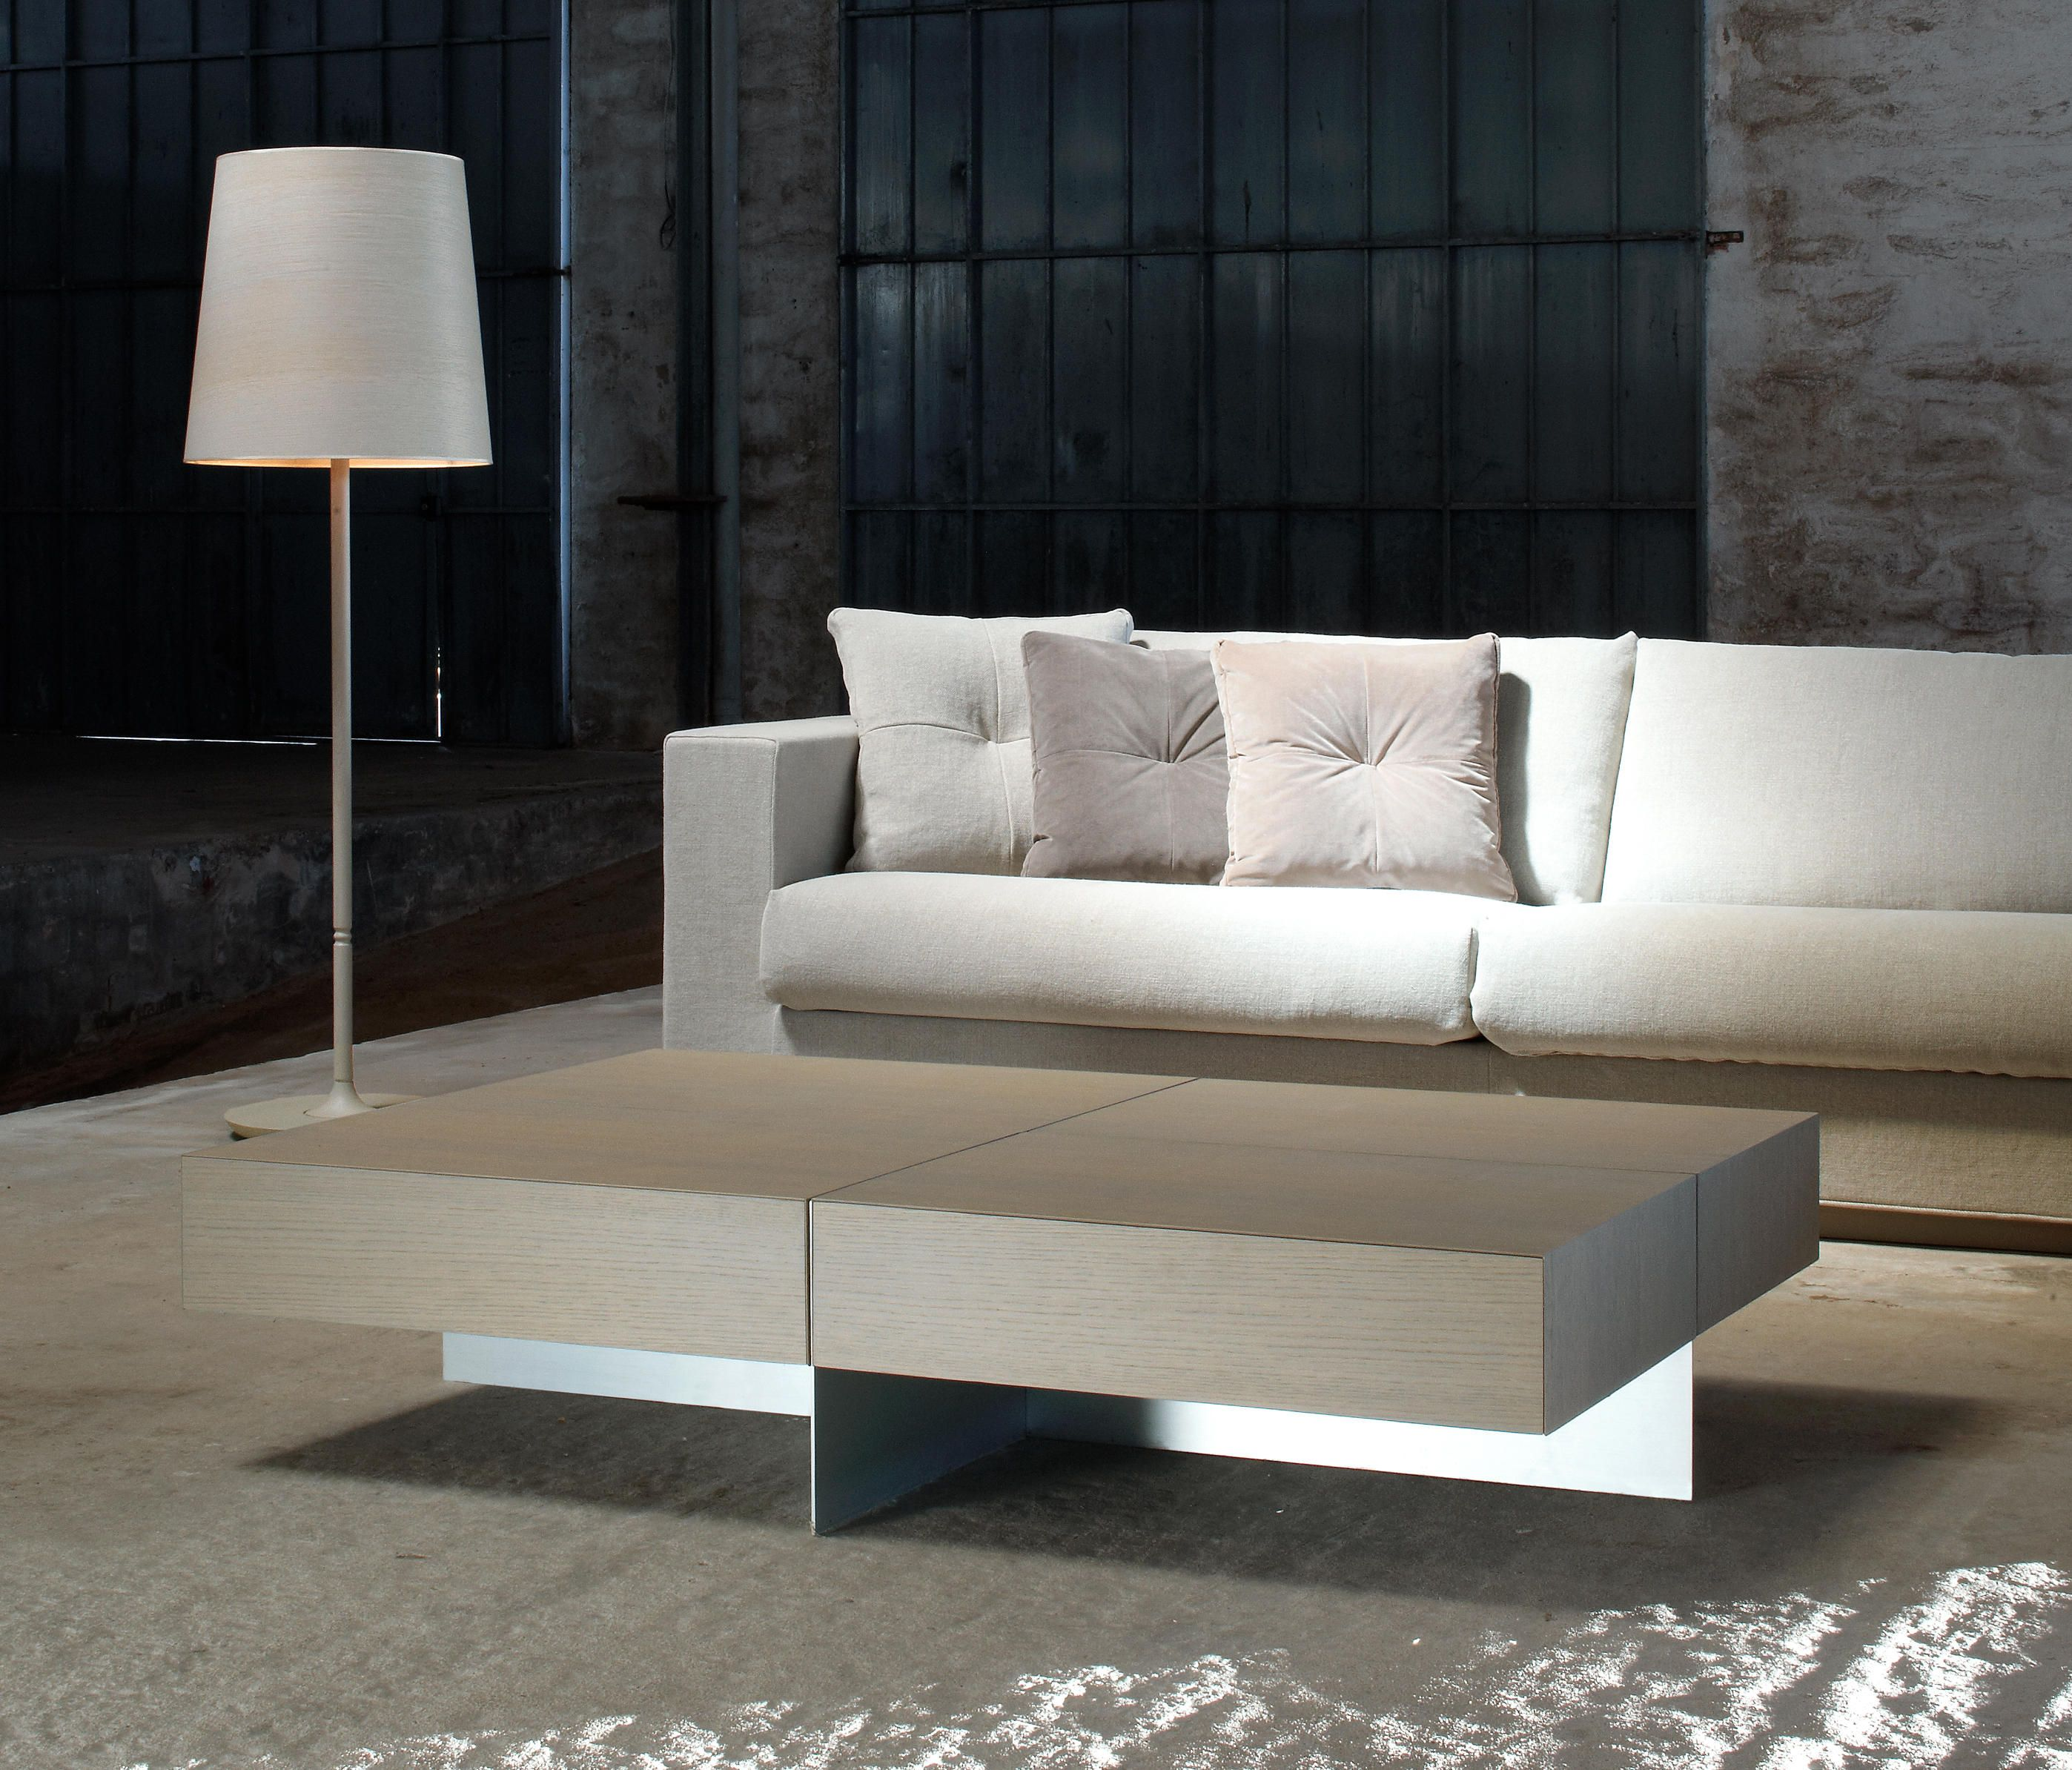 Changes Coffe Table Designer Coffee Tables From Original Joan Lao All Information High R Furniture Design Minimalist Coffee Table Furniture Design Modern [ 2388 x 2795 Pixel ]